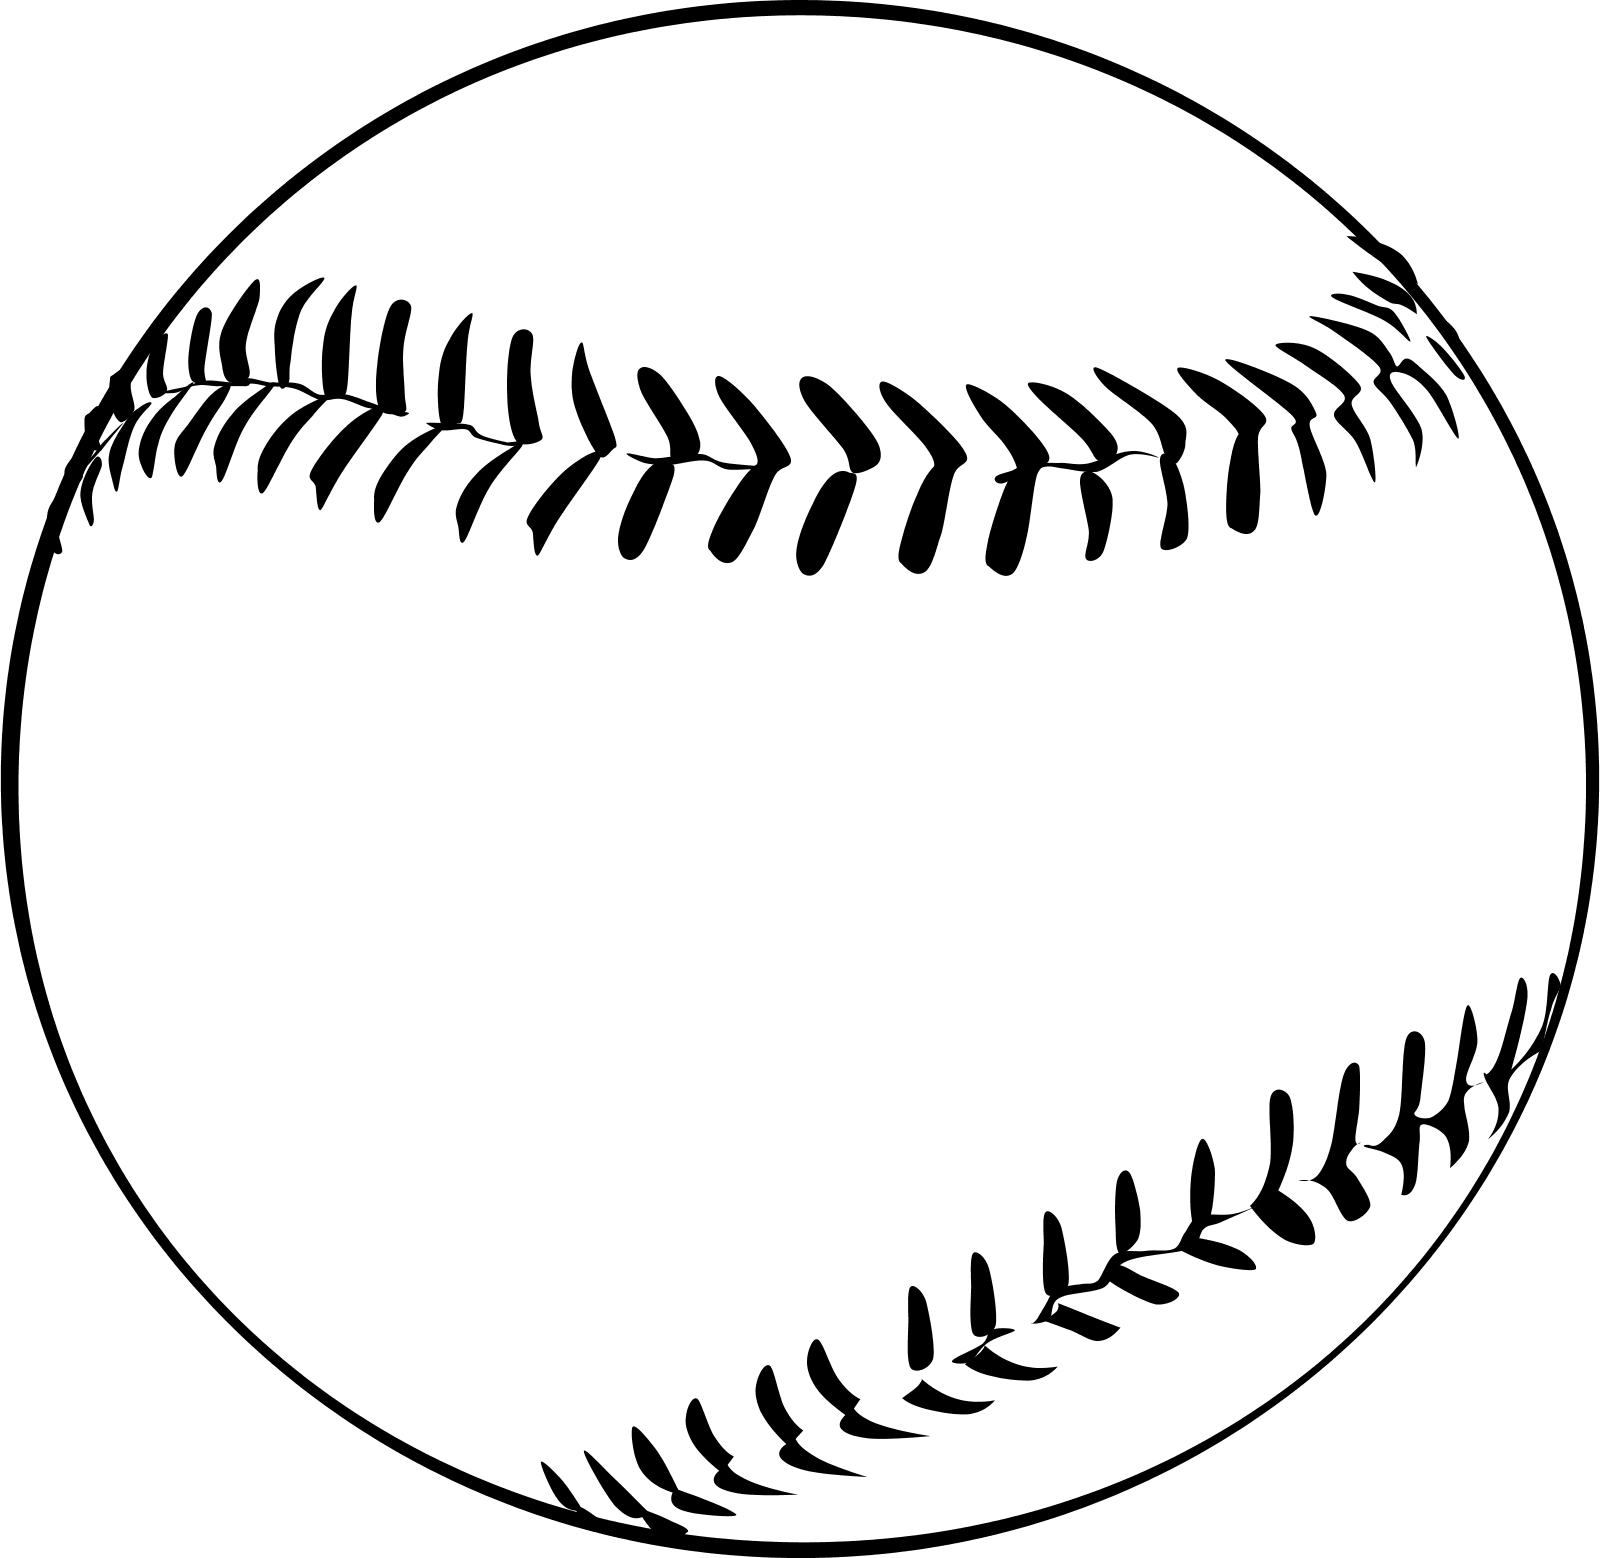 Old baseball clipart picture royalty free library 28+ Collection of Baseball Clipart Png | High quality, free cliparts ... picture royalty free library